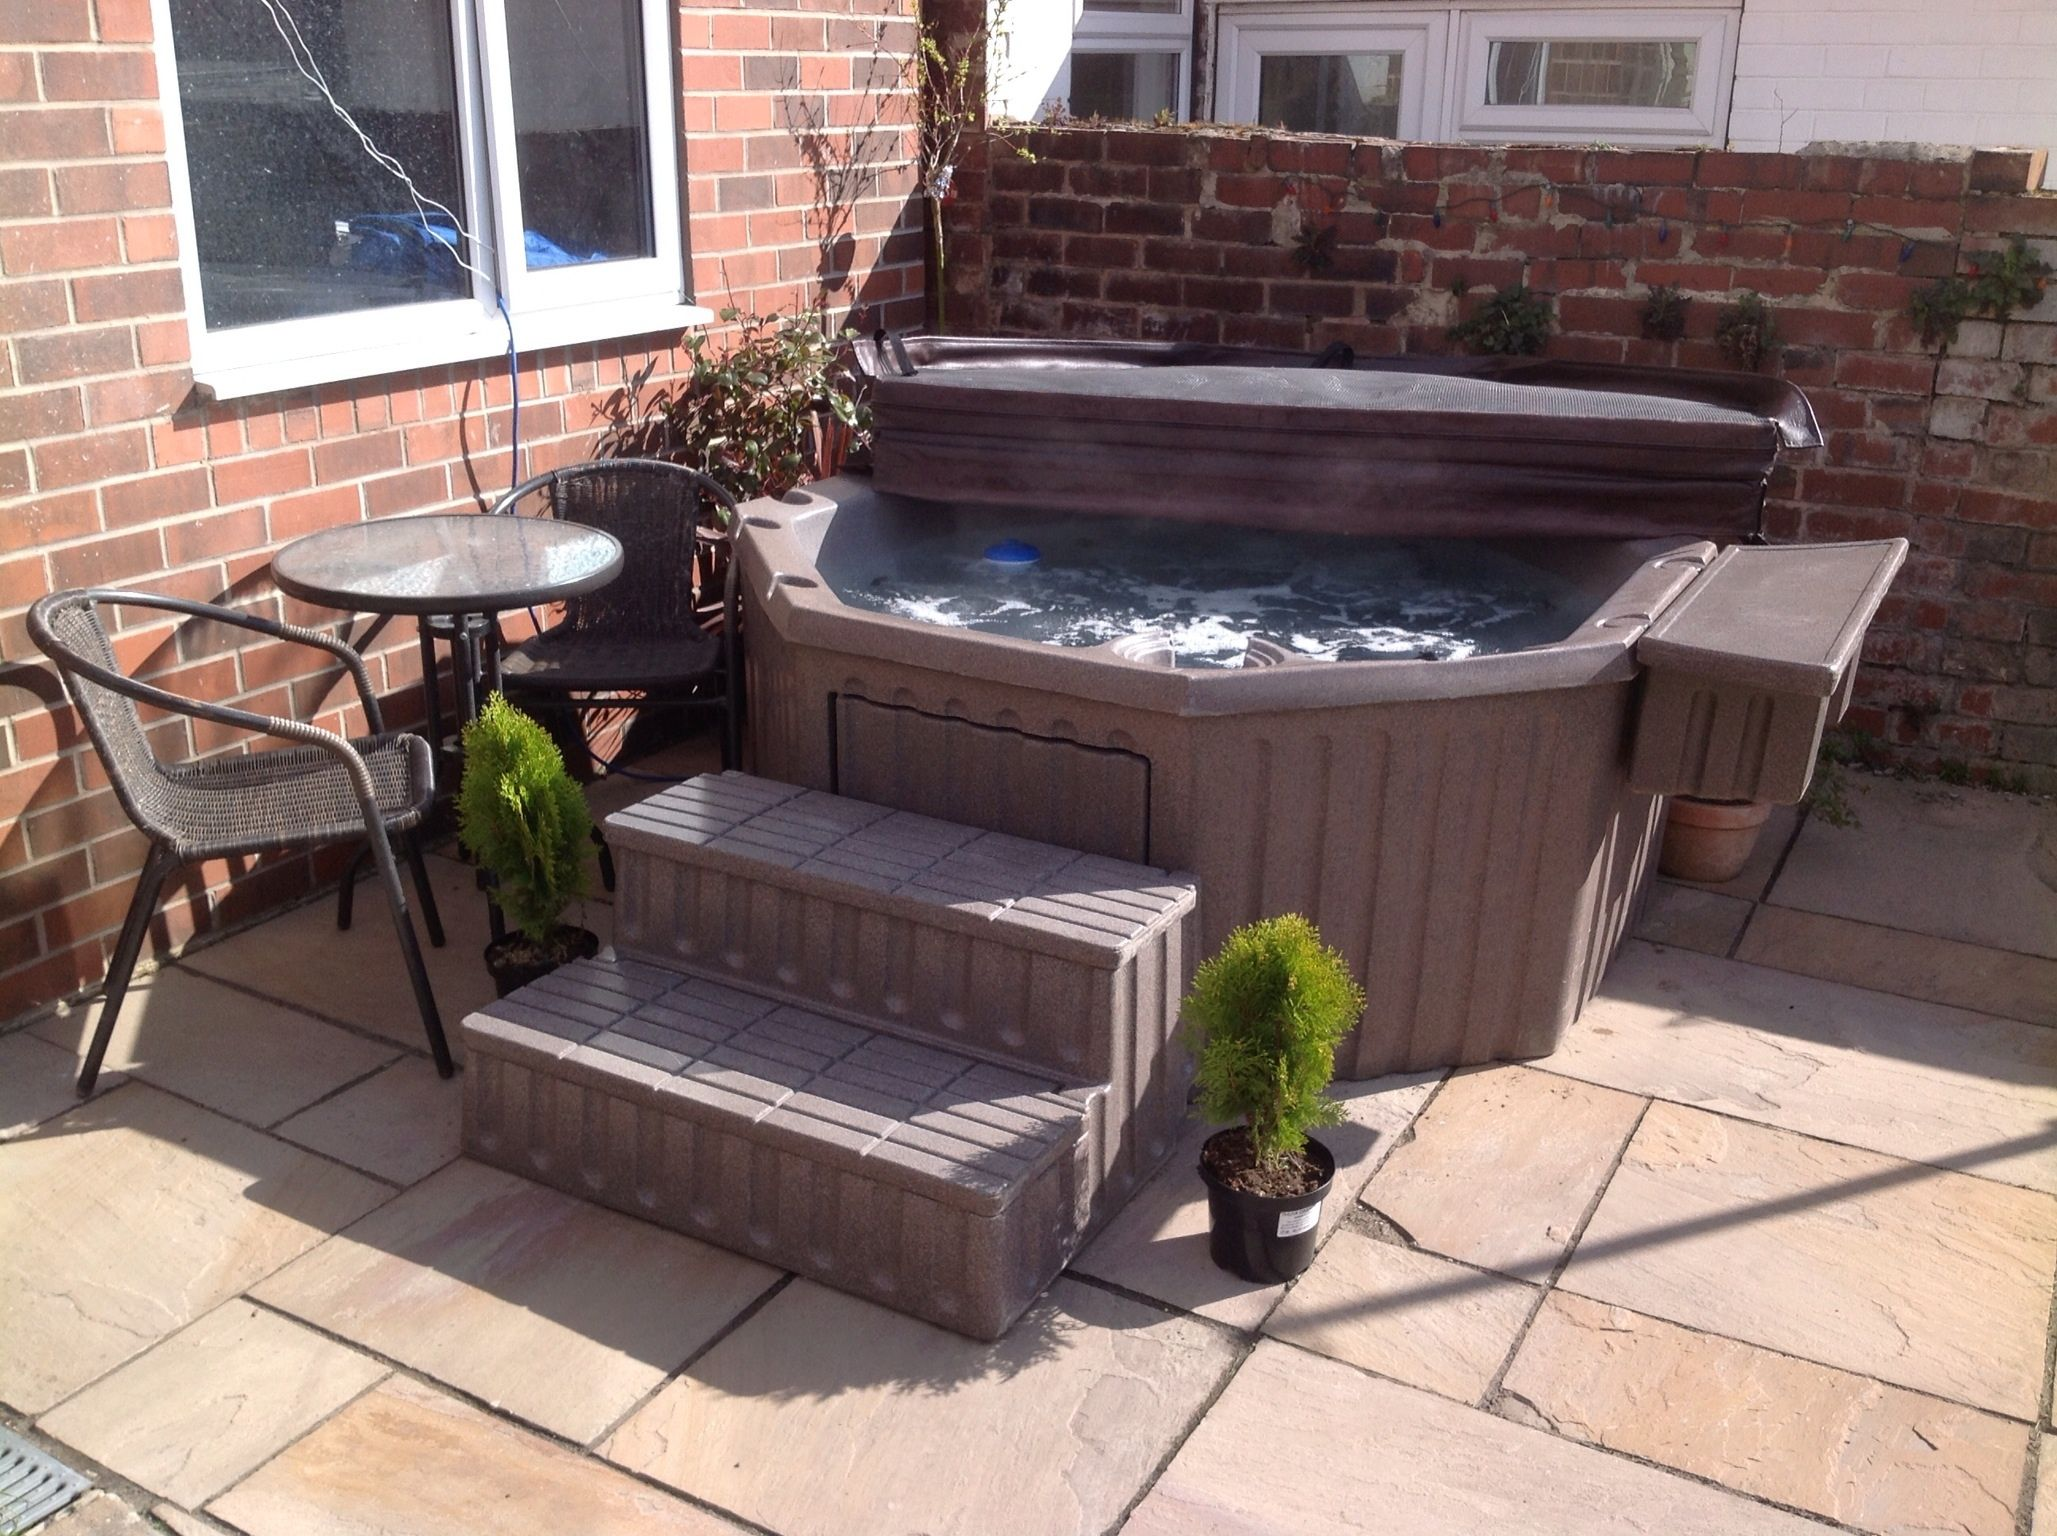 T 4 Tubs Hot Tub Hire Add To Event Hot Tub Tub Spa Tub